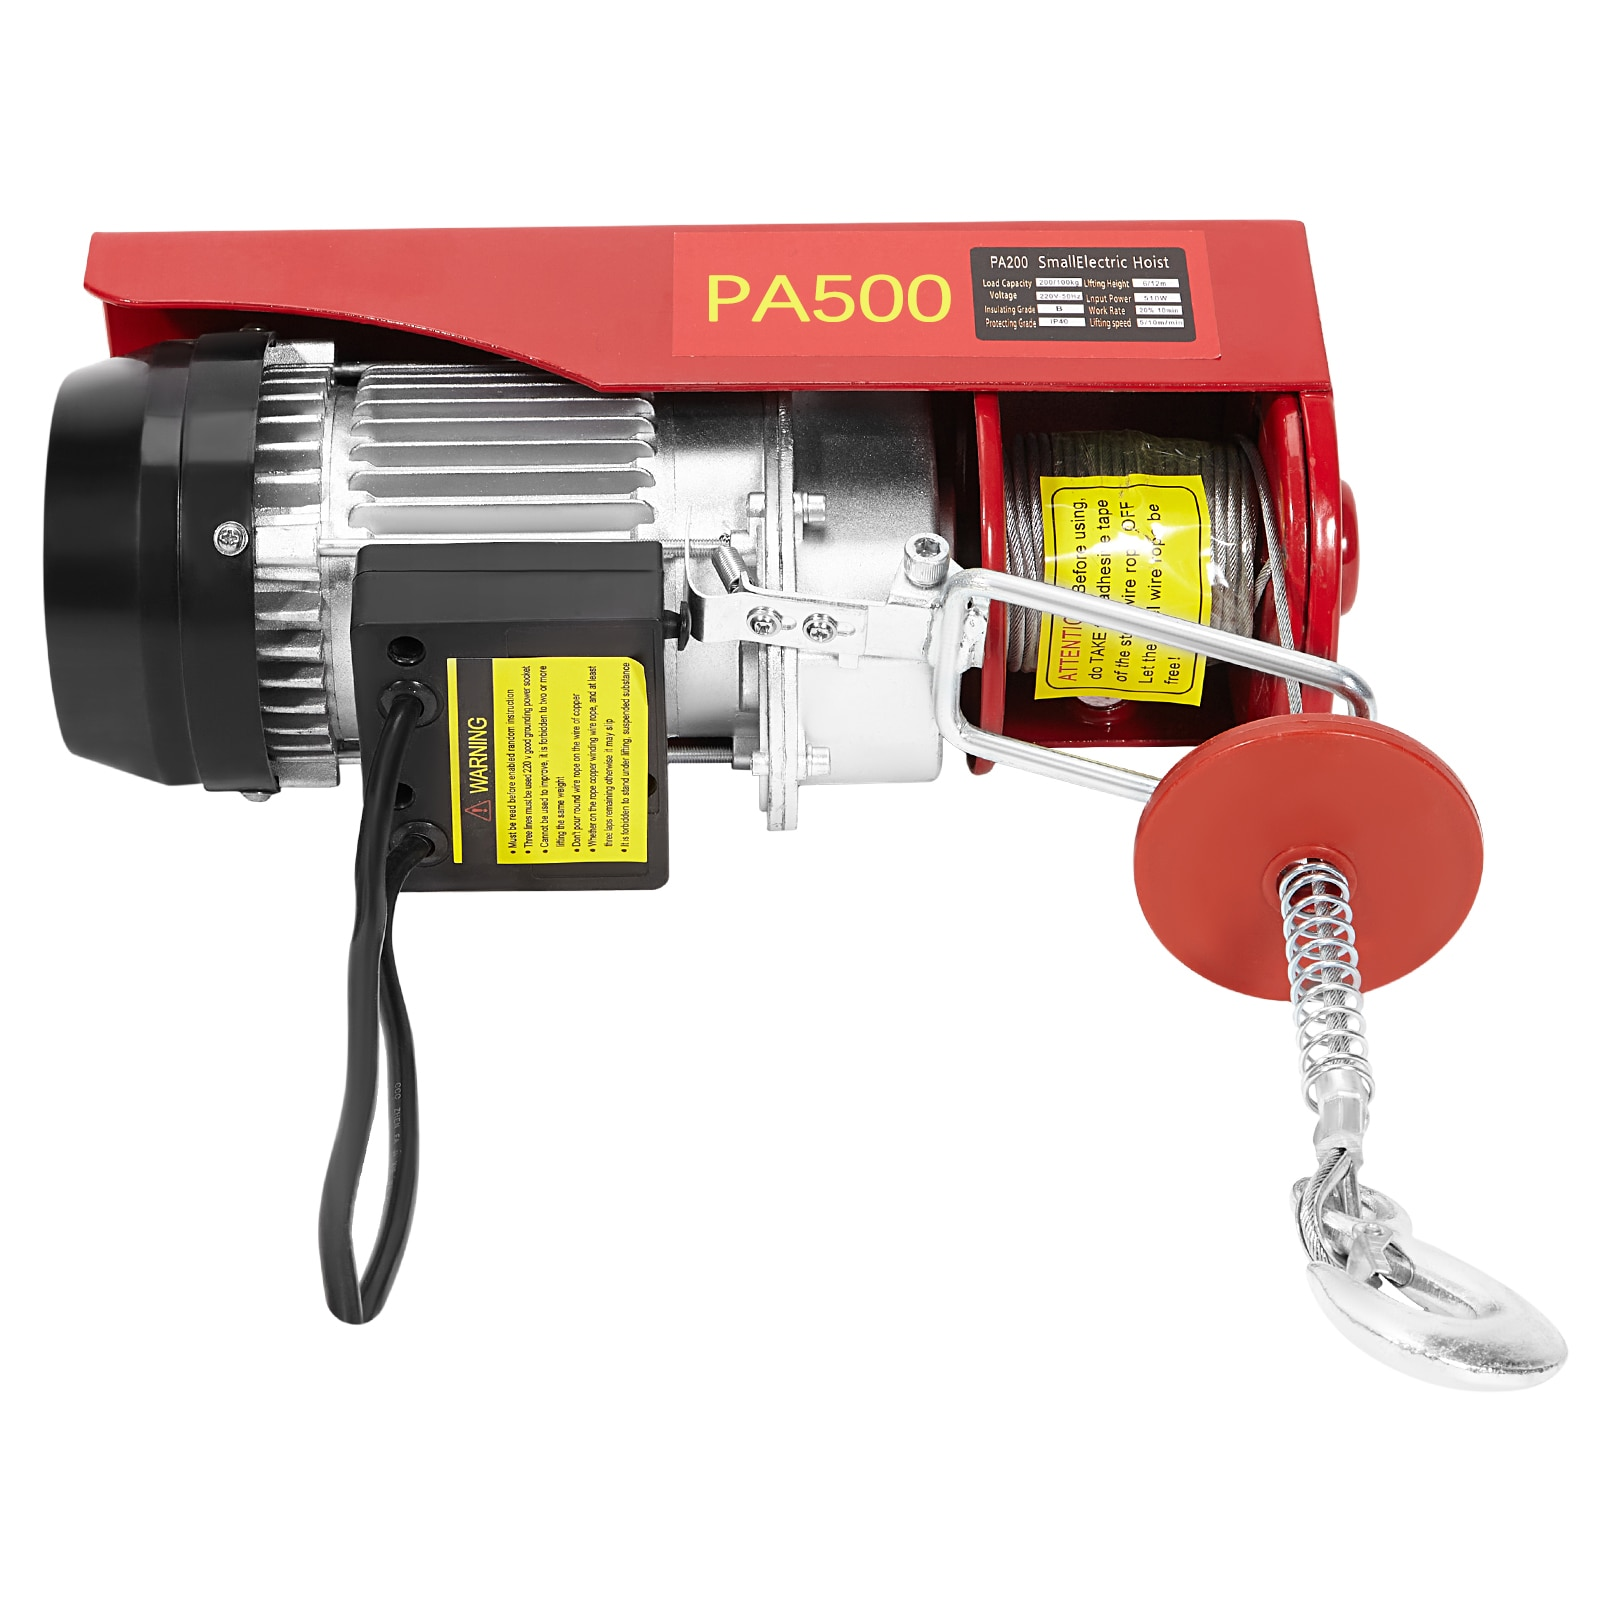 100 lbs Electric Lifting Cranes AC 220V 100V Remote Control Power System Small Wire Rope Lifting Tool With Emergency Stop Switch